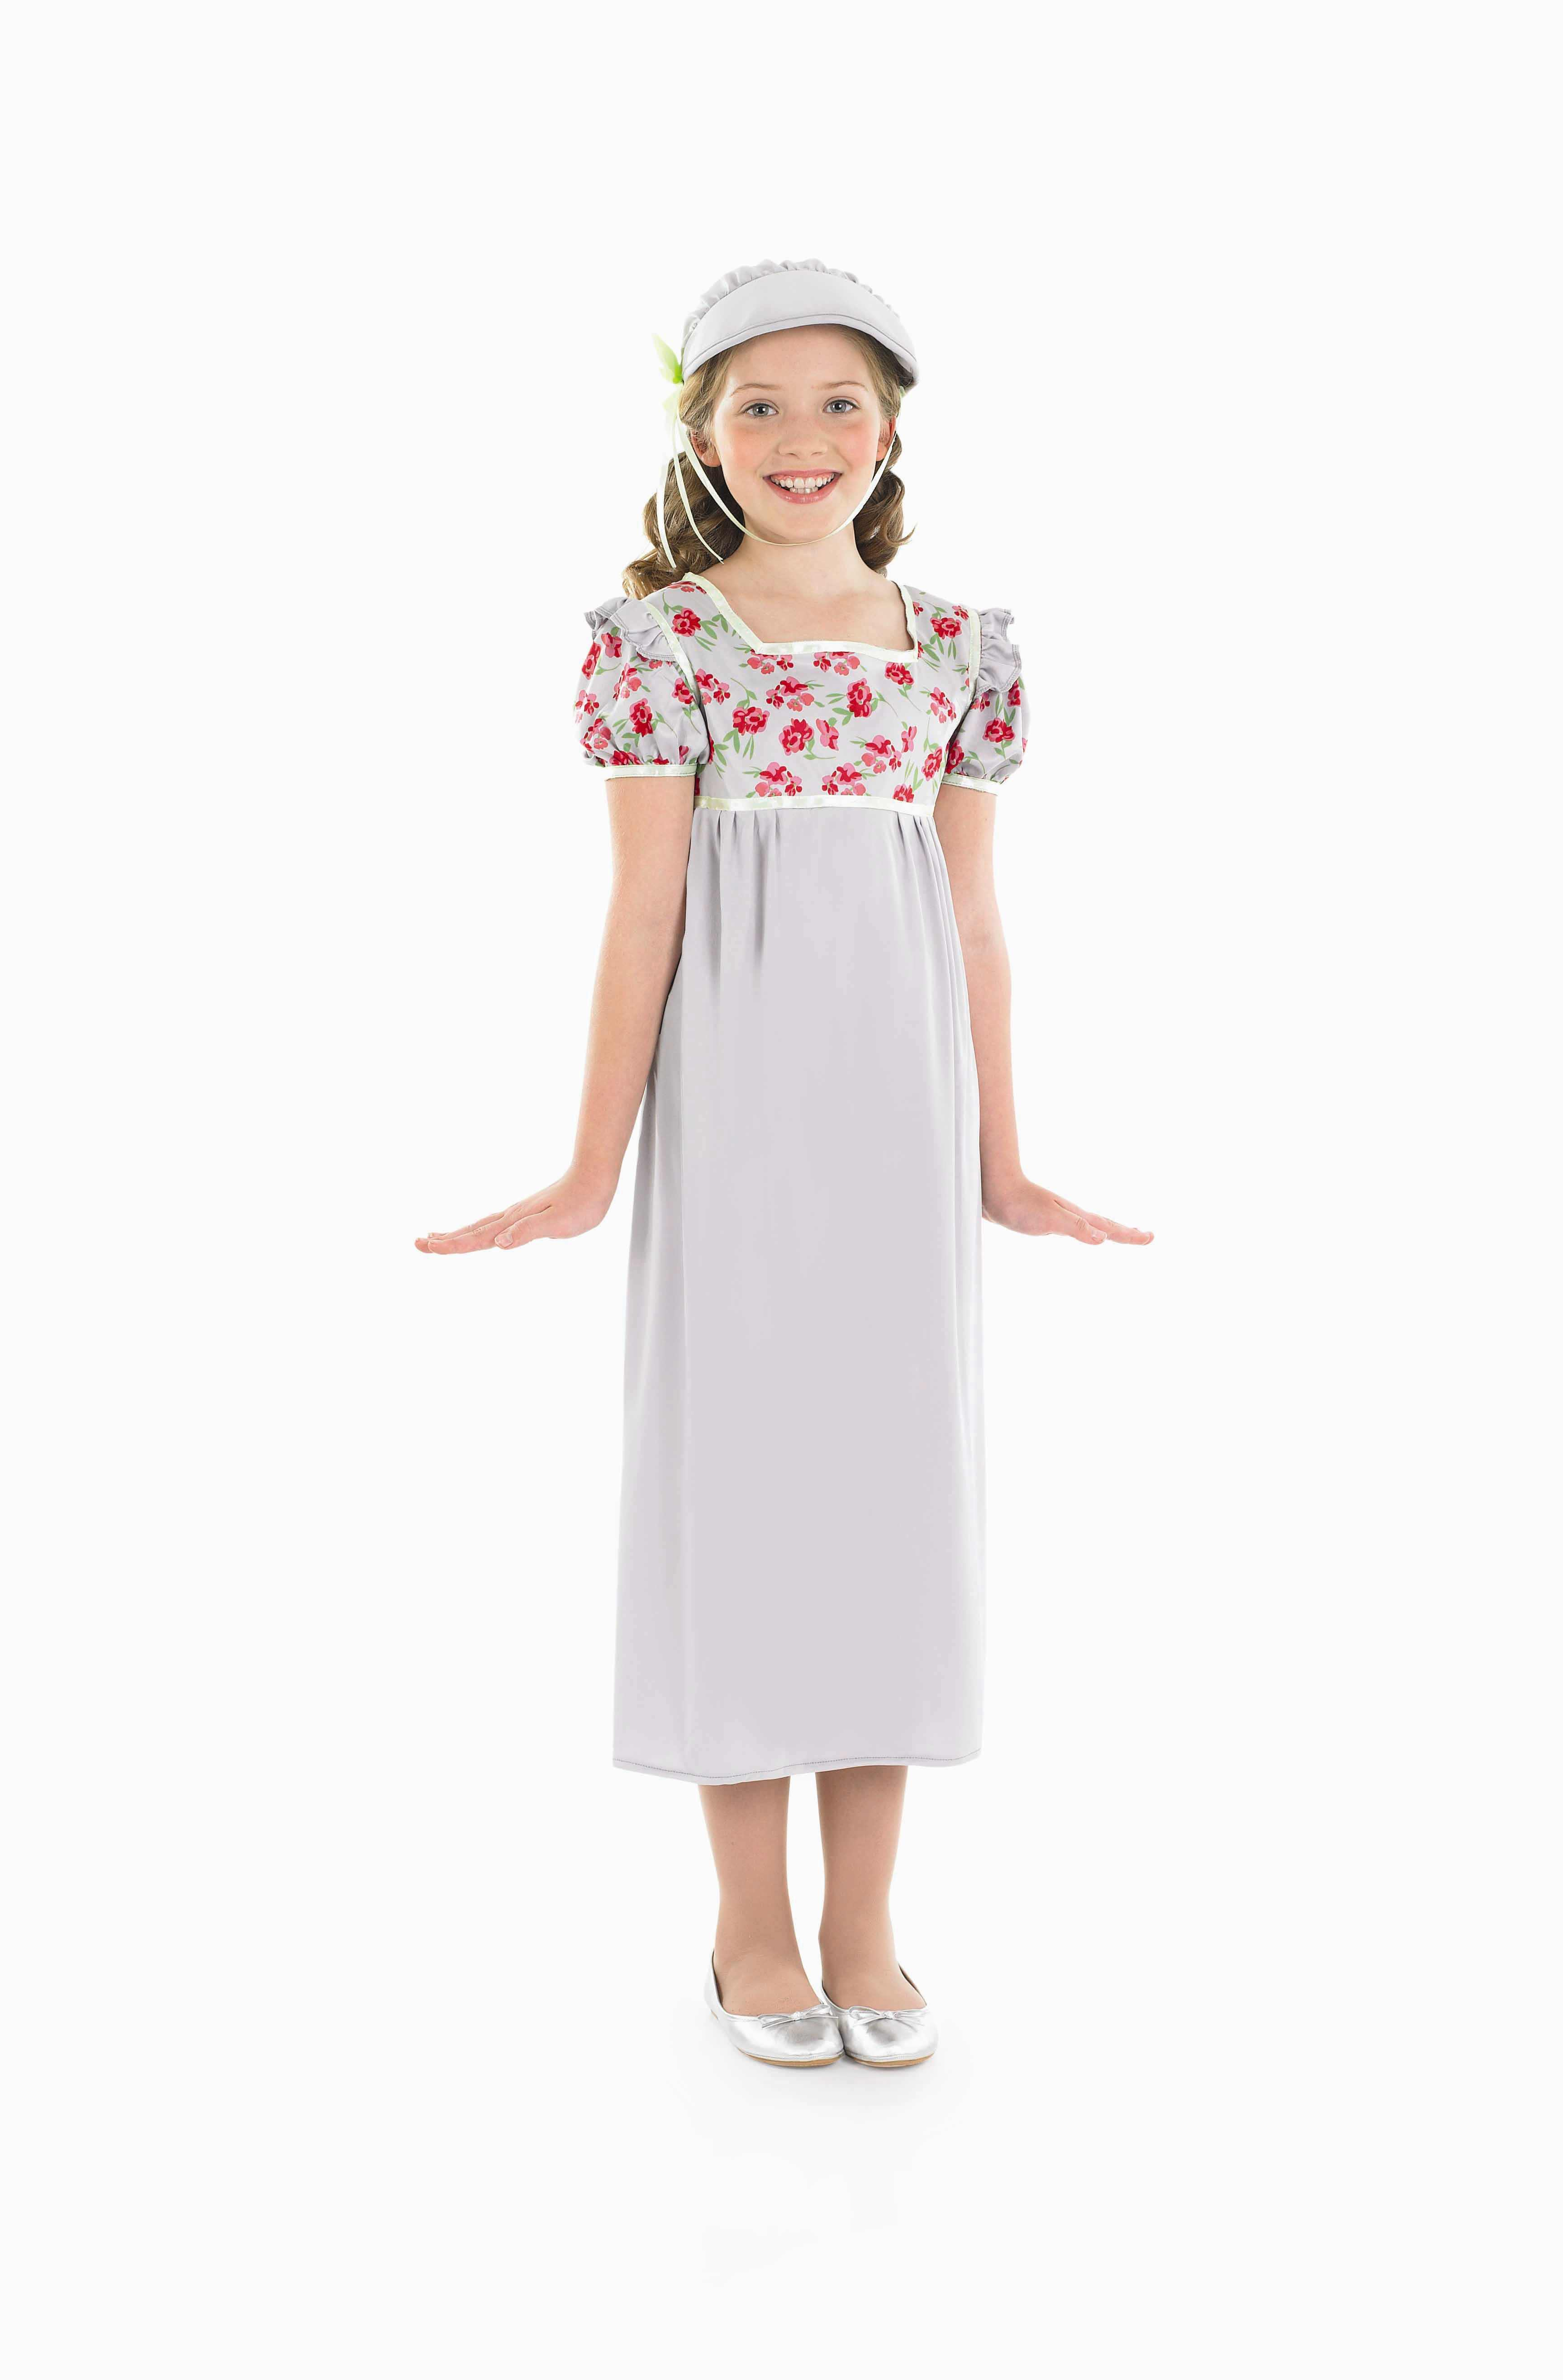 Girls Regency Girl Costume for Historic Book Day Fancy Dress Up Outfits